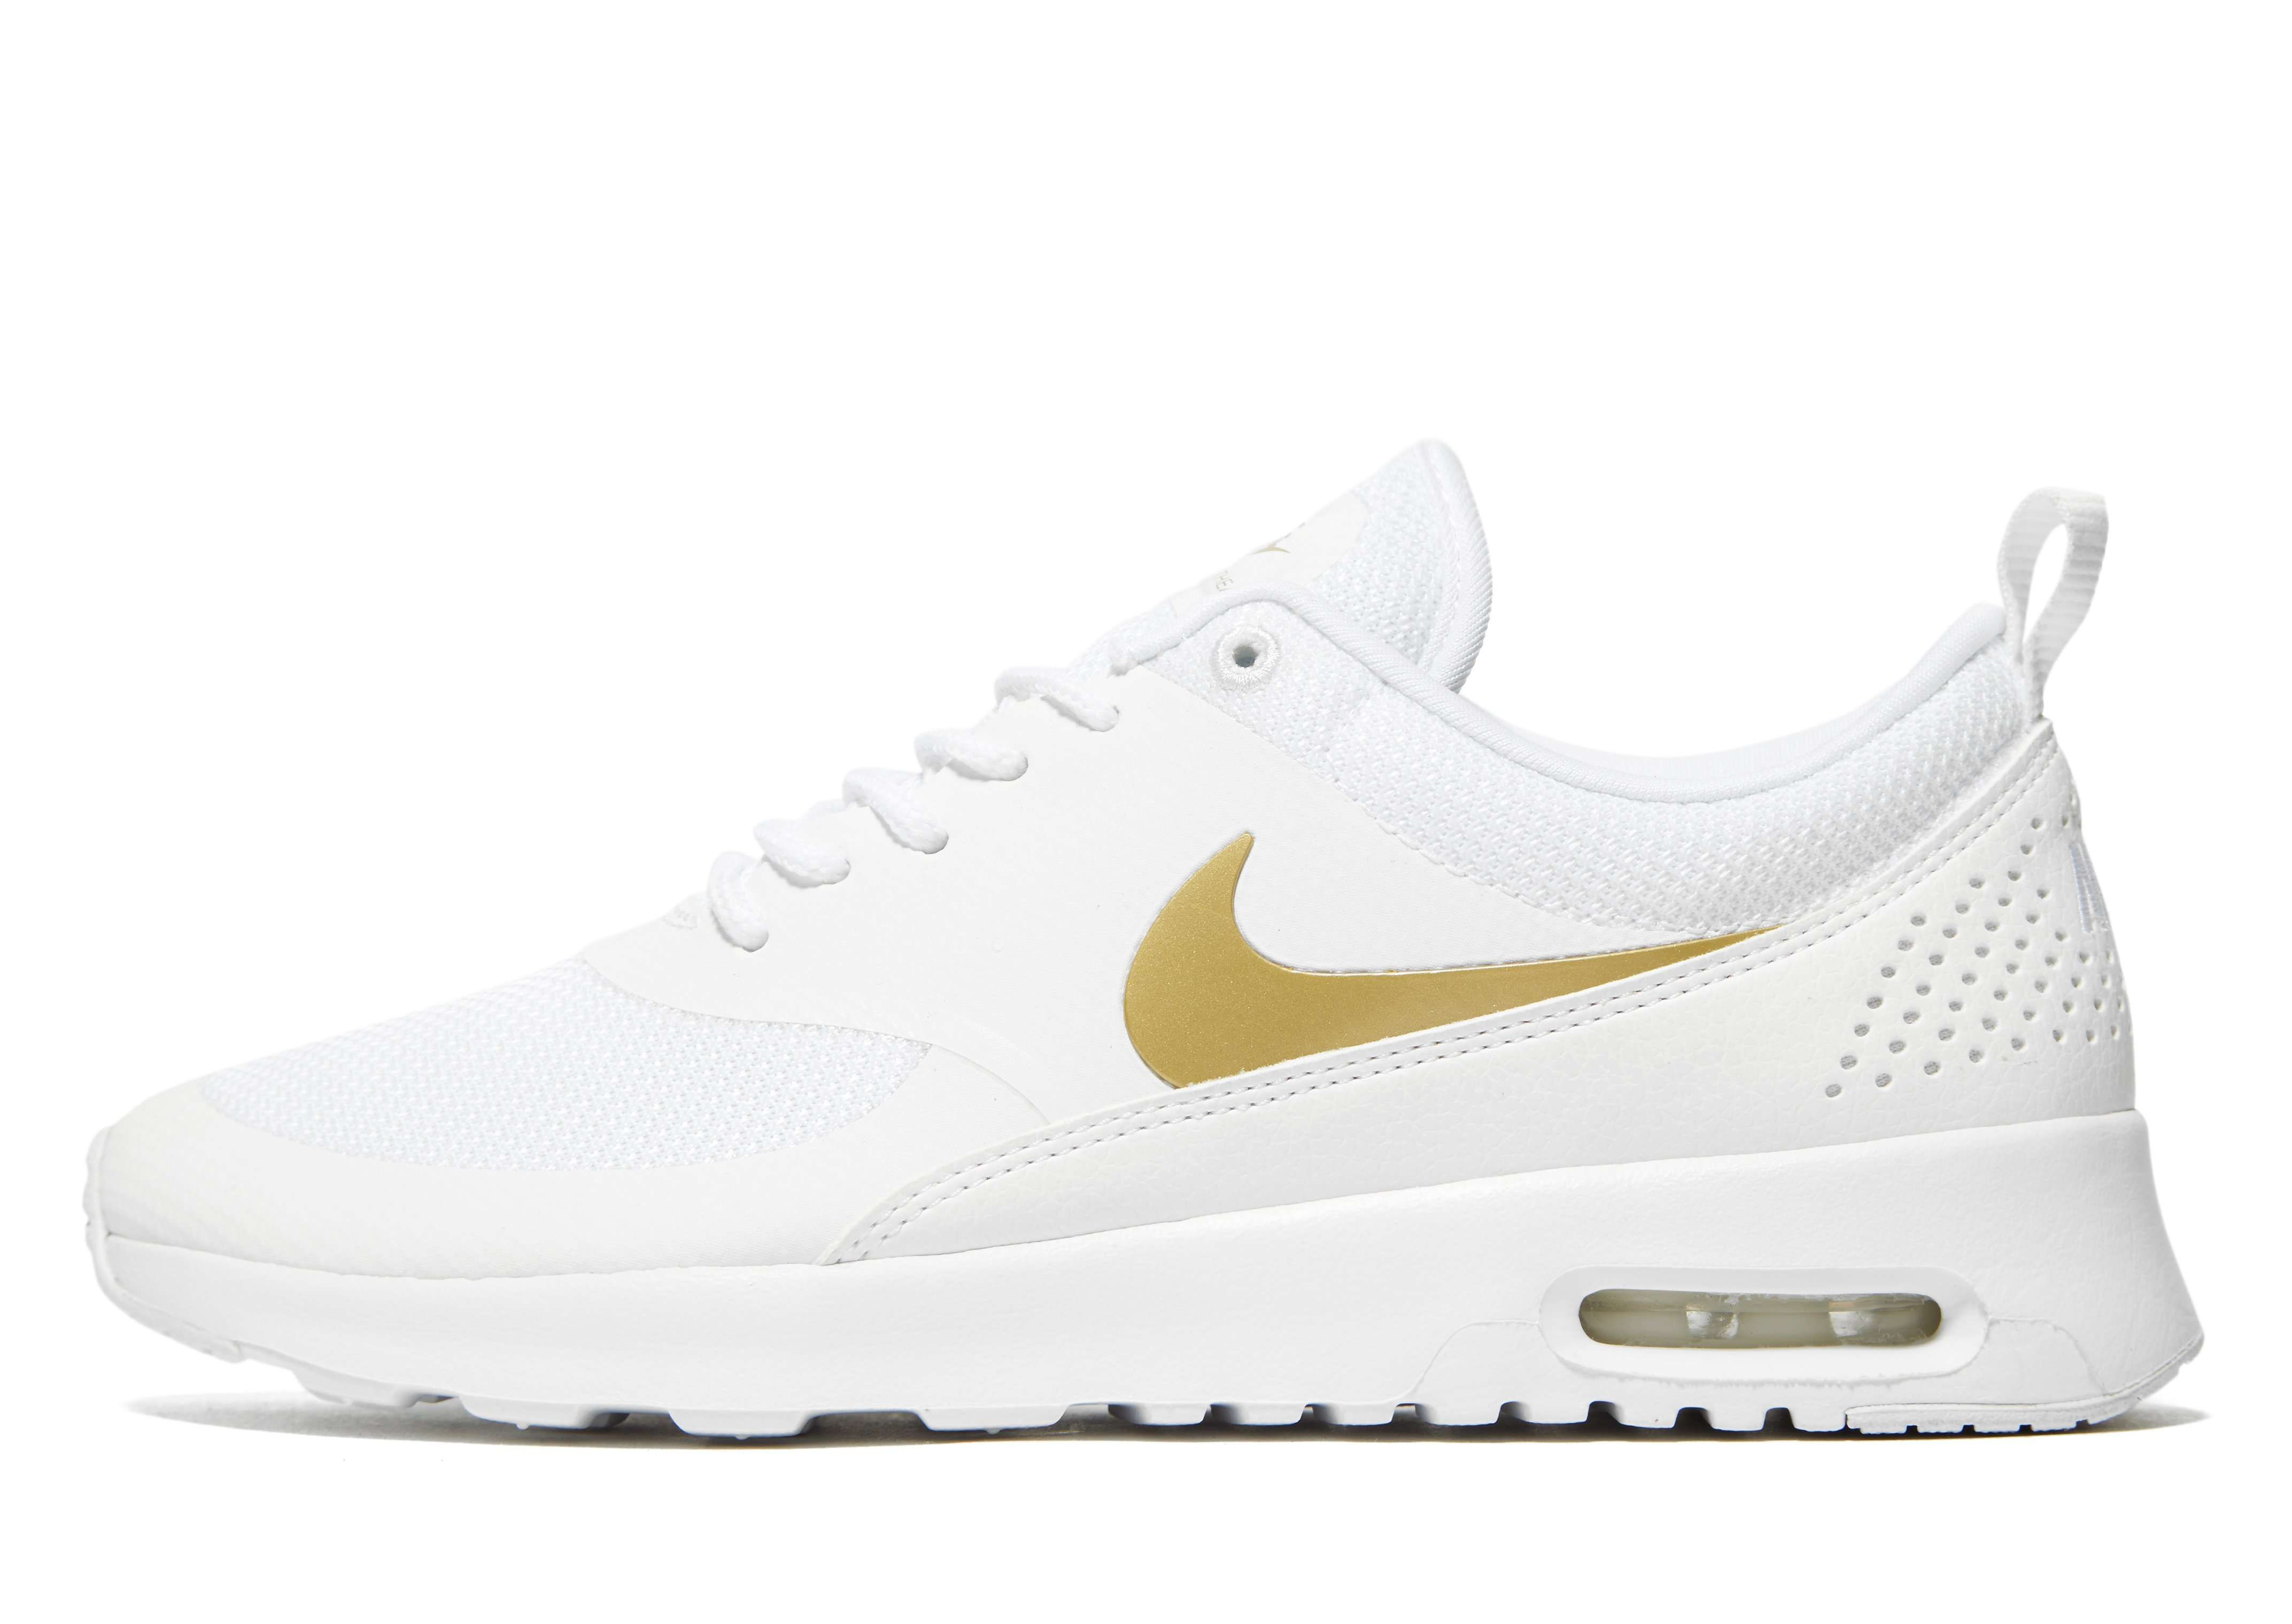 Nike Air Max Thea Women s - Shop online for Nike Air Max Thea Women s with  JD 00a9b3fdd9